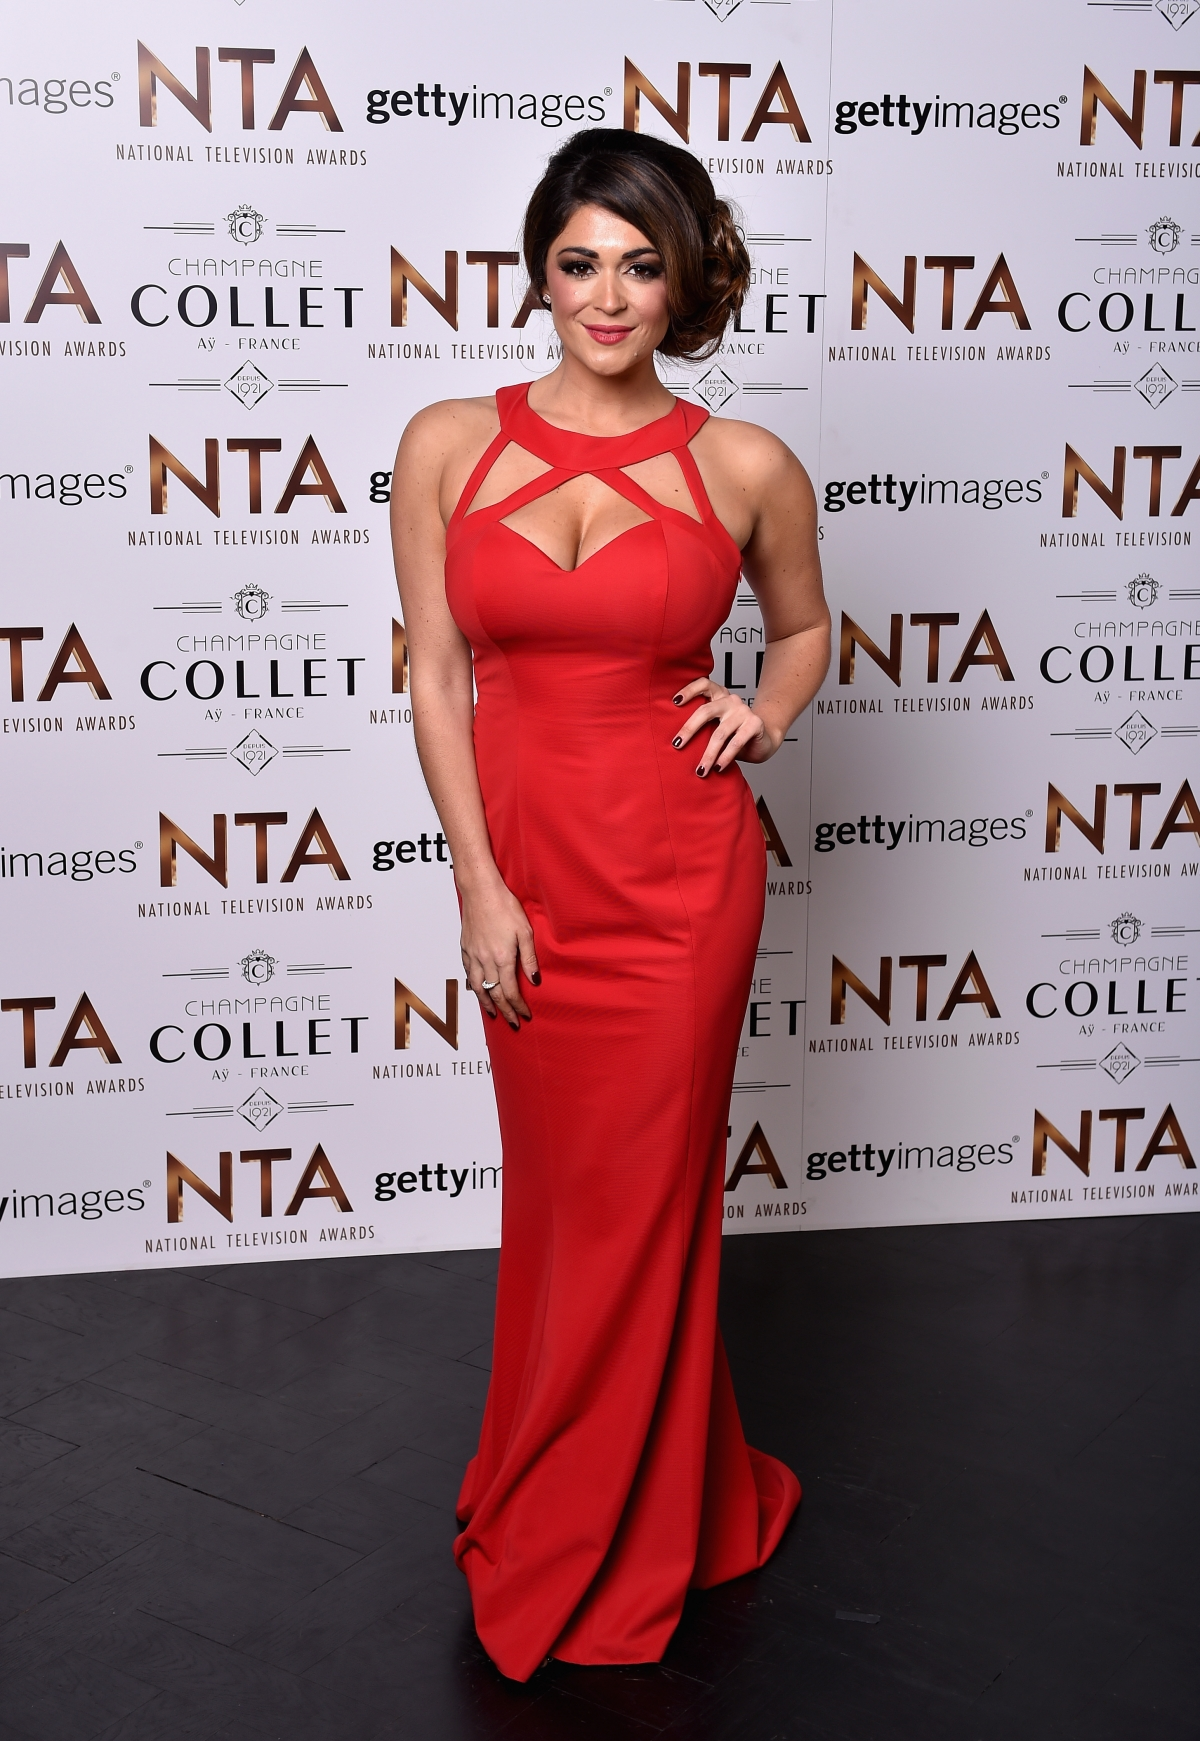 National Television Awards 2016 Red Carpet